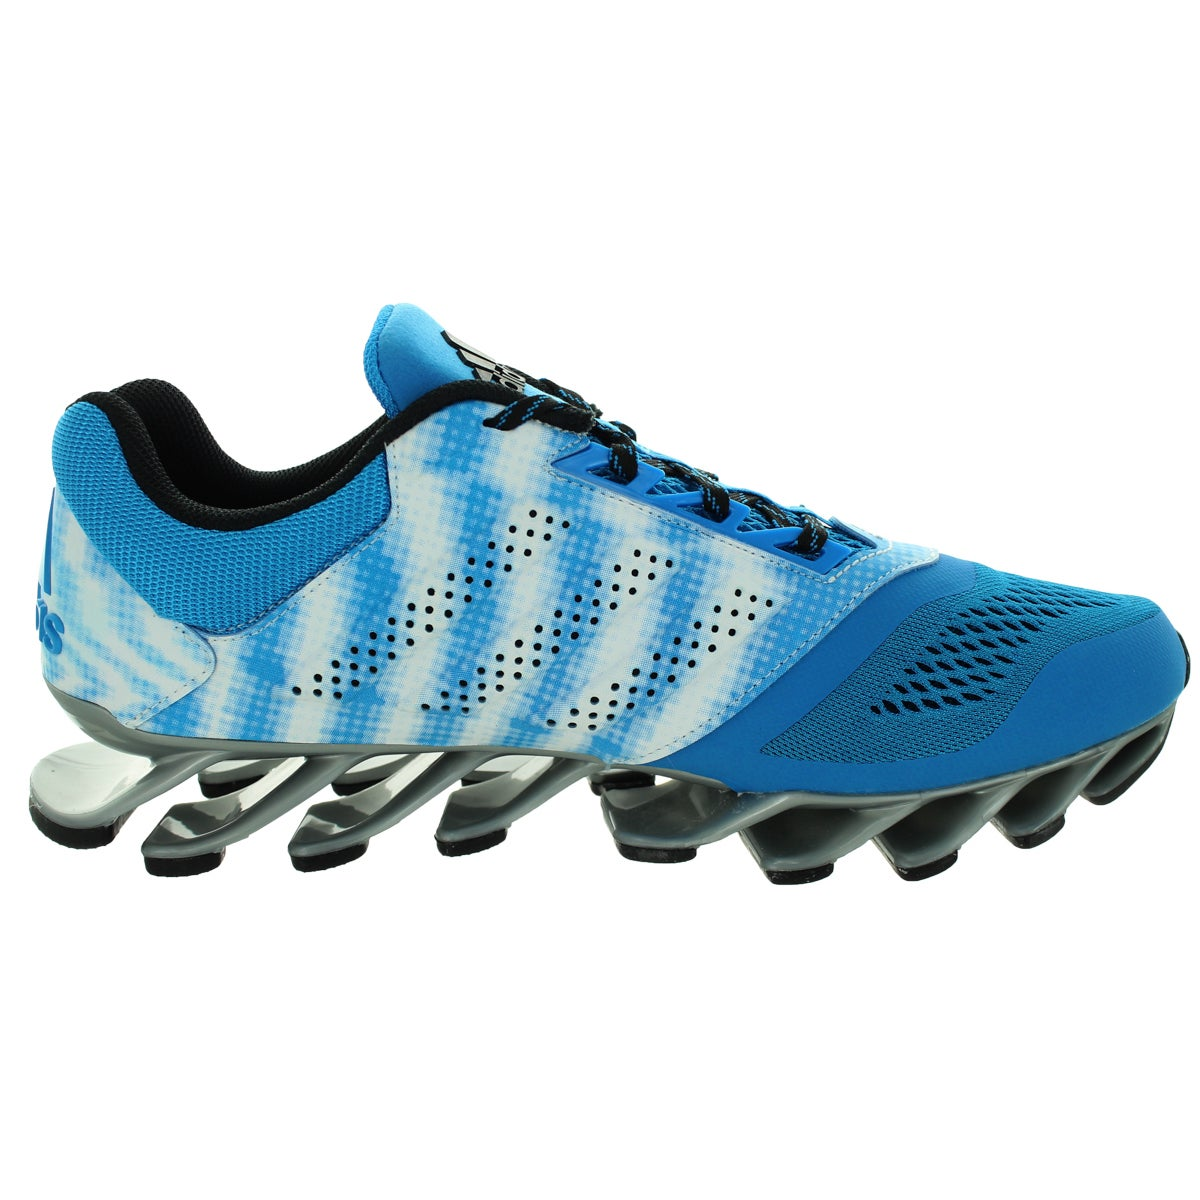 superior quality 3126f 1b319 Adidas Men's Springblade Drive 2 M Blue/White Running Shoe